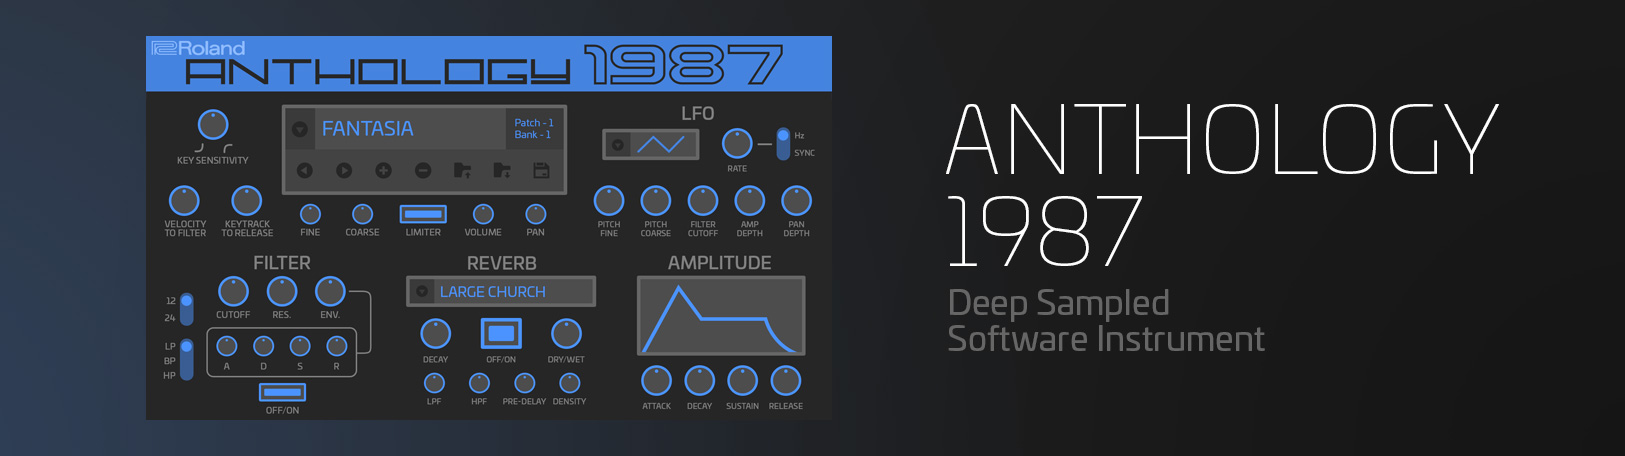 Anthology 1987: Virtual Synth Software - VST Plugin | Roland